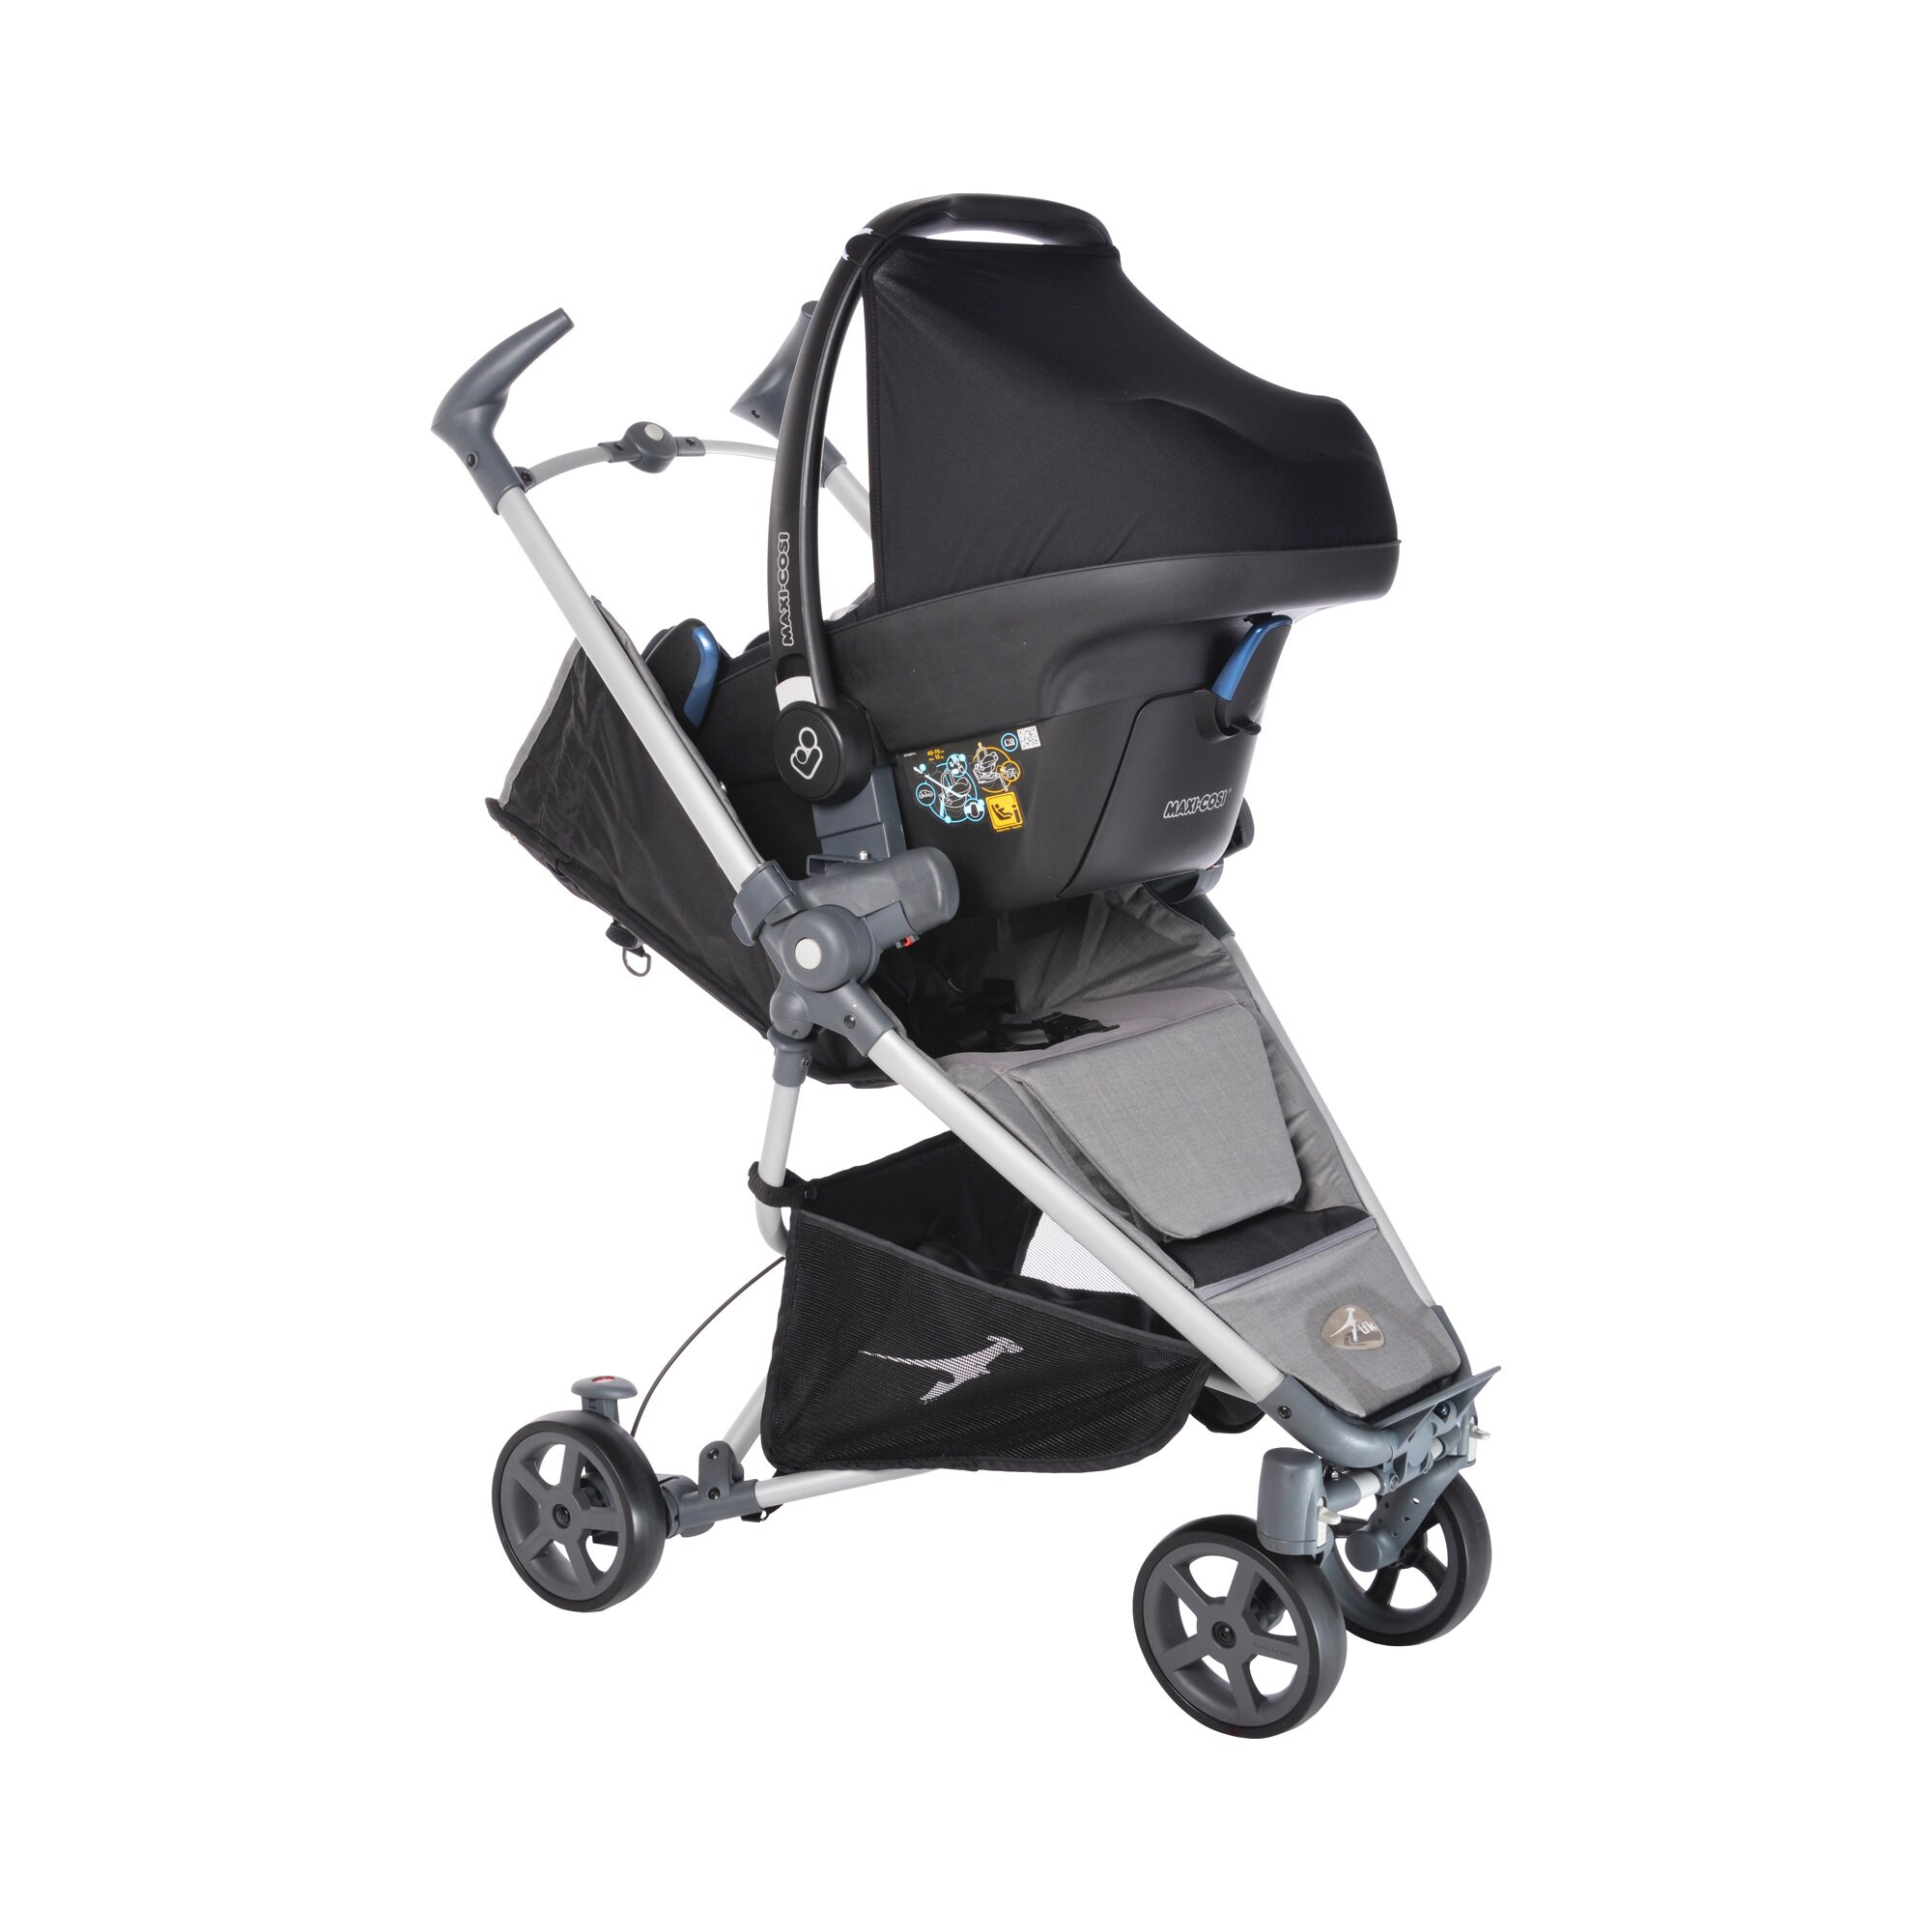 tfk-maxi-cosi-cybex-besafe-recaro-kiddy-adapter-fur-dot